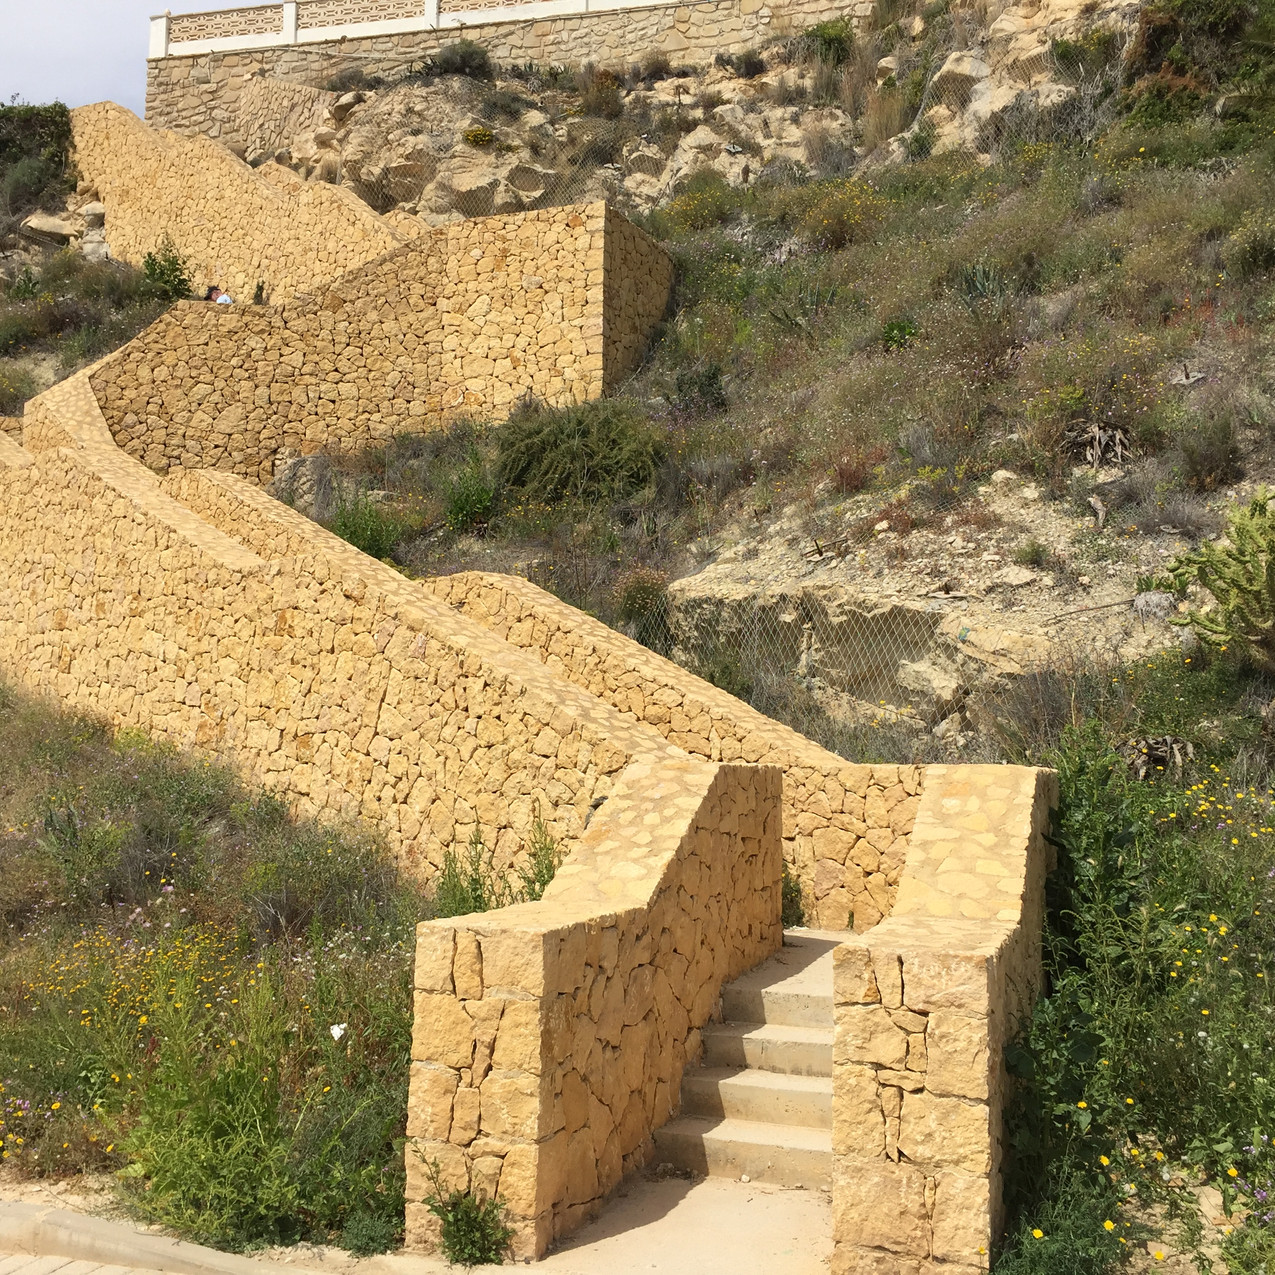 85 steps to the clifftop!